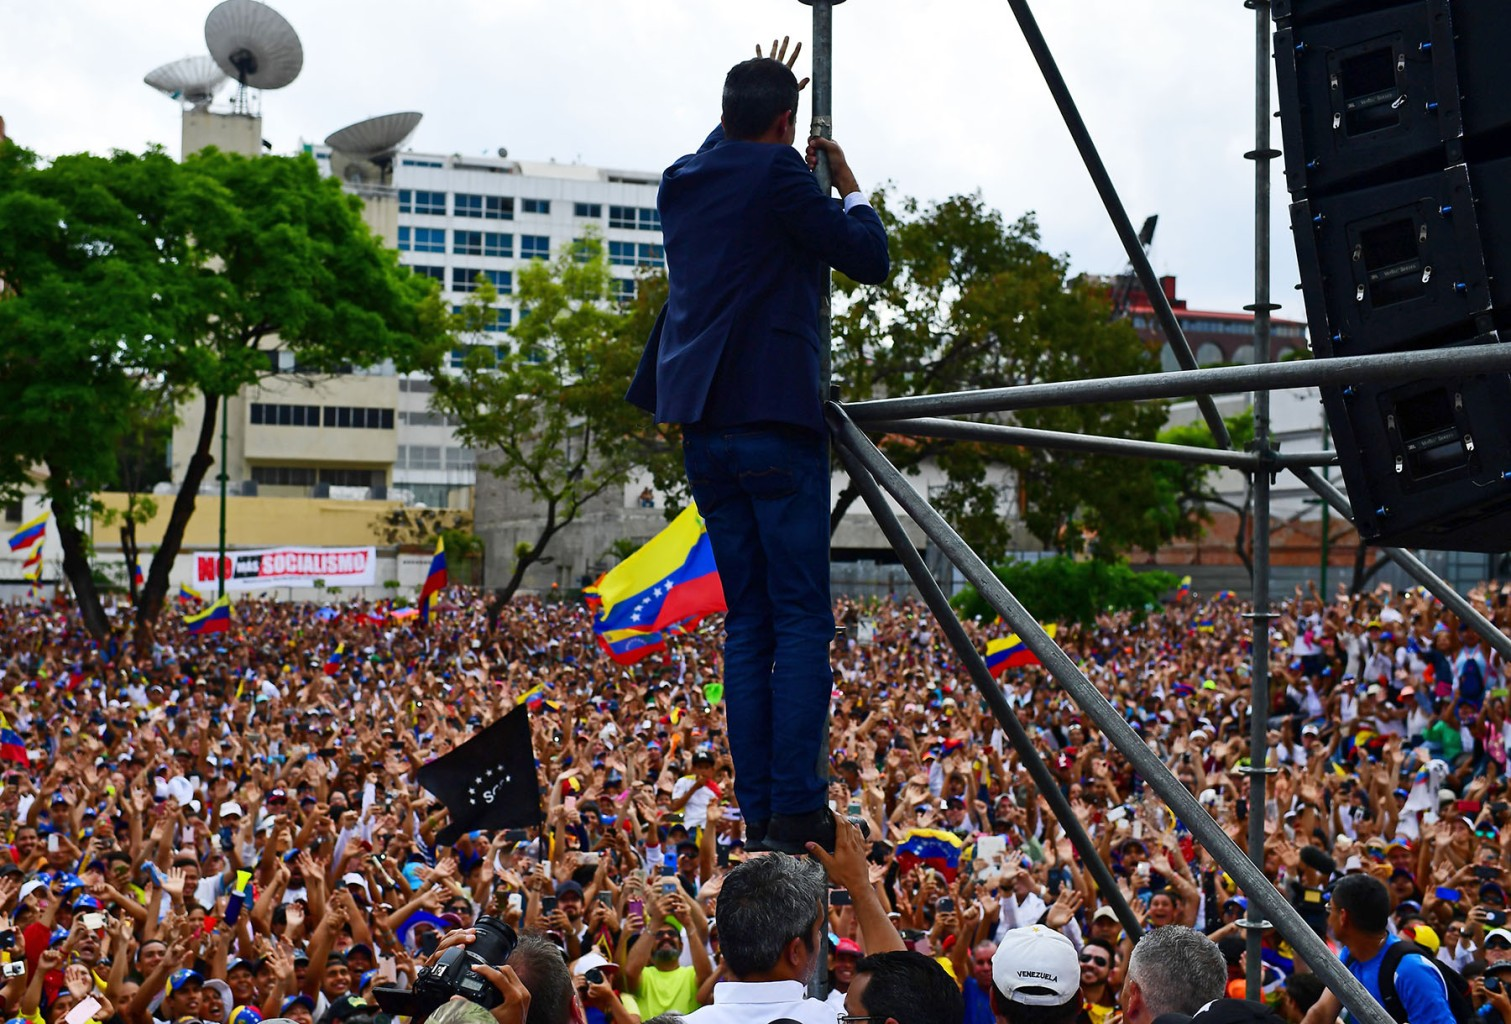 Venezuelan opposition leader Juan Guaidó waves to the crowd during a rally upon his arrival in Caracas on March 4. RONALDO SCHEMIDT/AFP/Getty Images